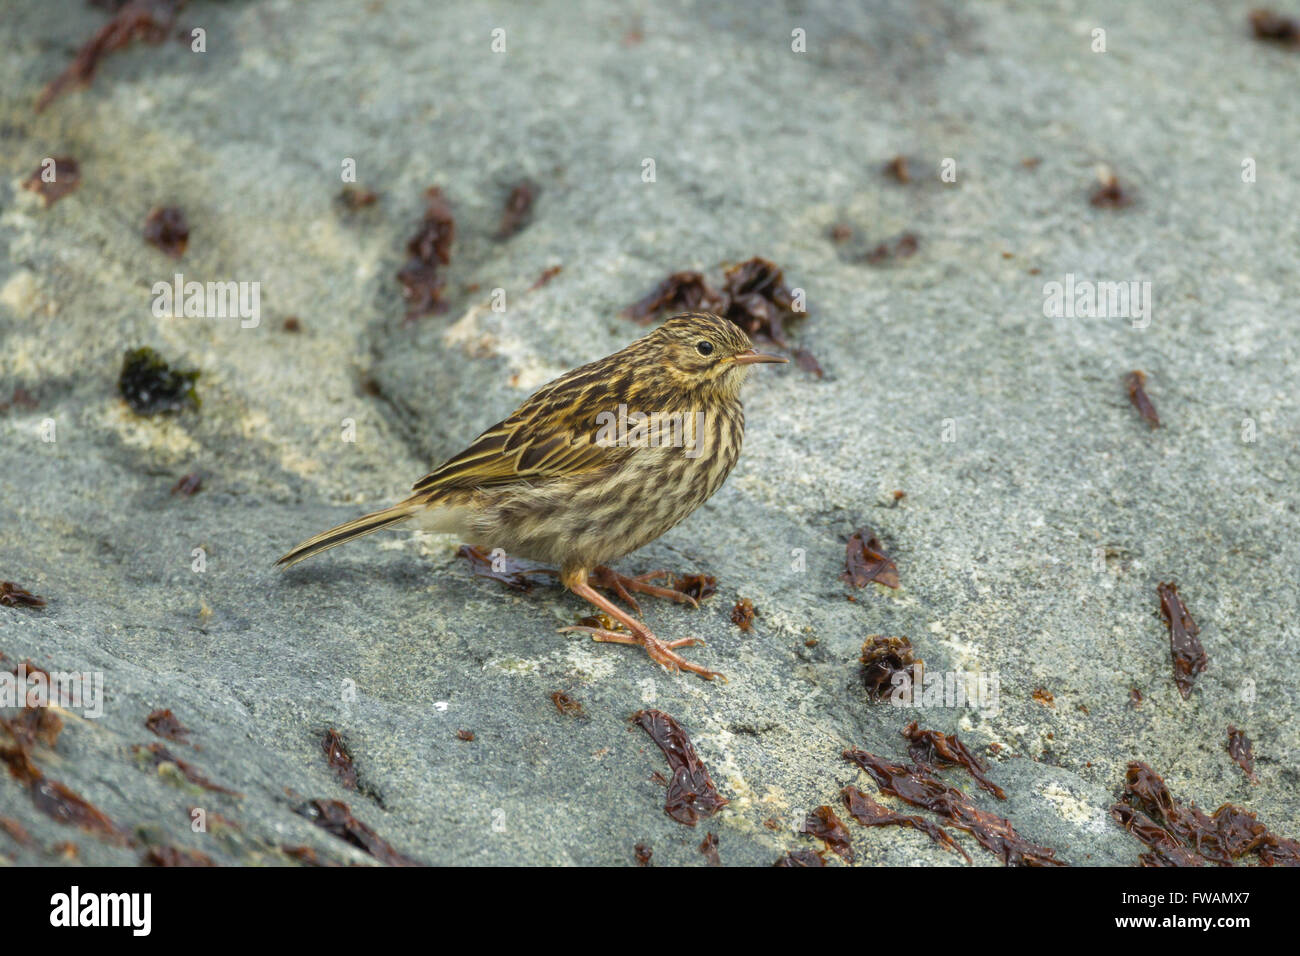 South georgia pipit Anthus antarcticus, foraging along rocky shoreline, Cooper Island, South Georgia in January. - Stock Image